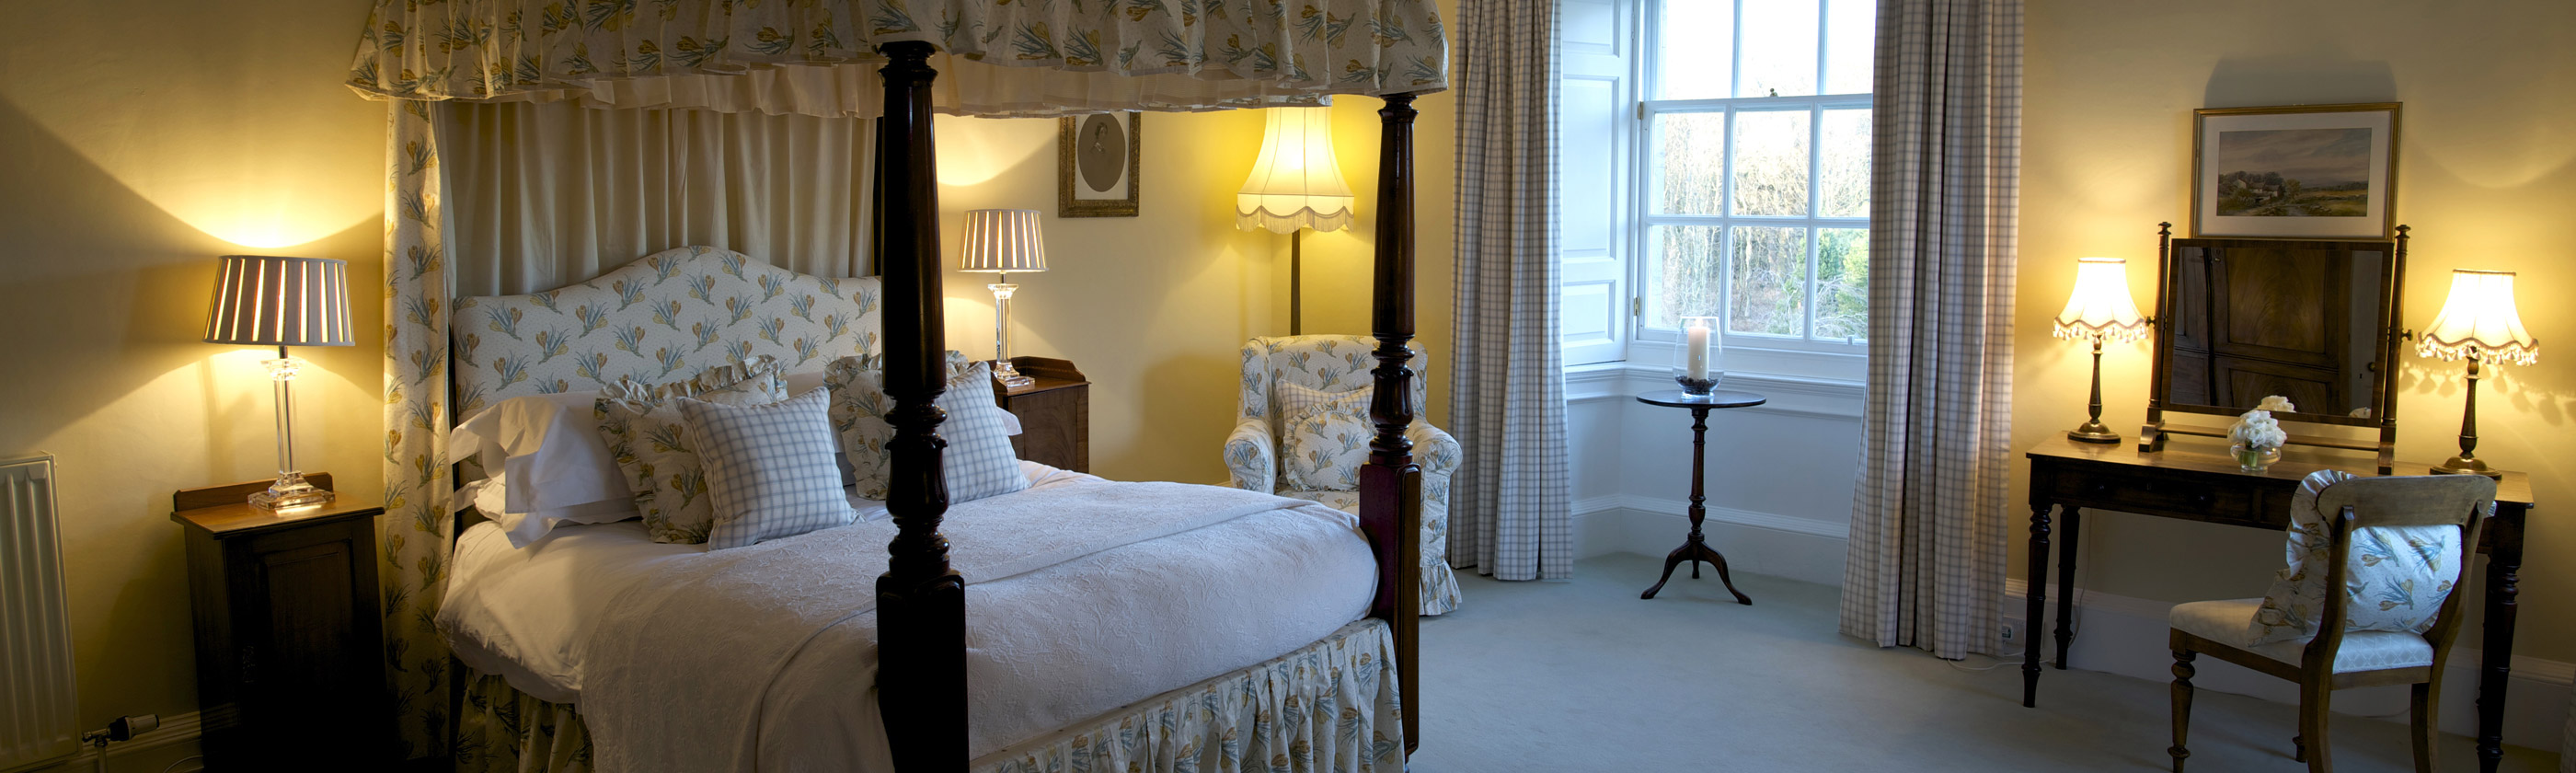 Photo of luxurious bedroom in Gilmerton House with four poster bed.